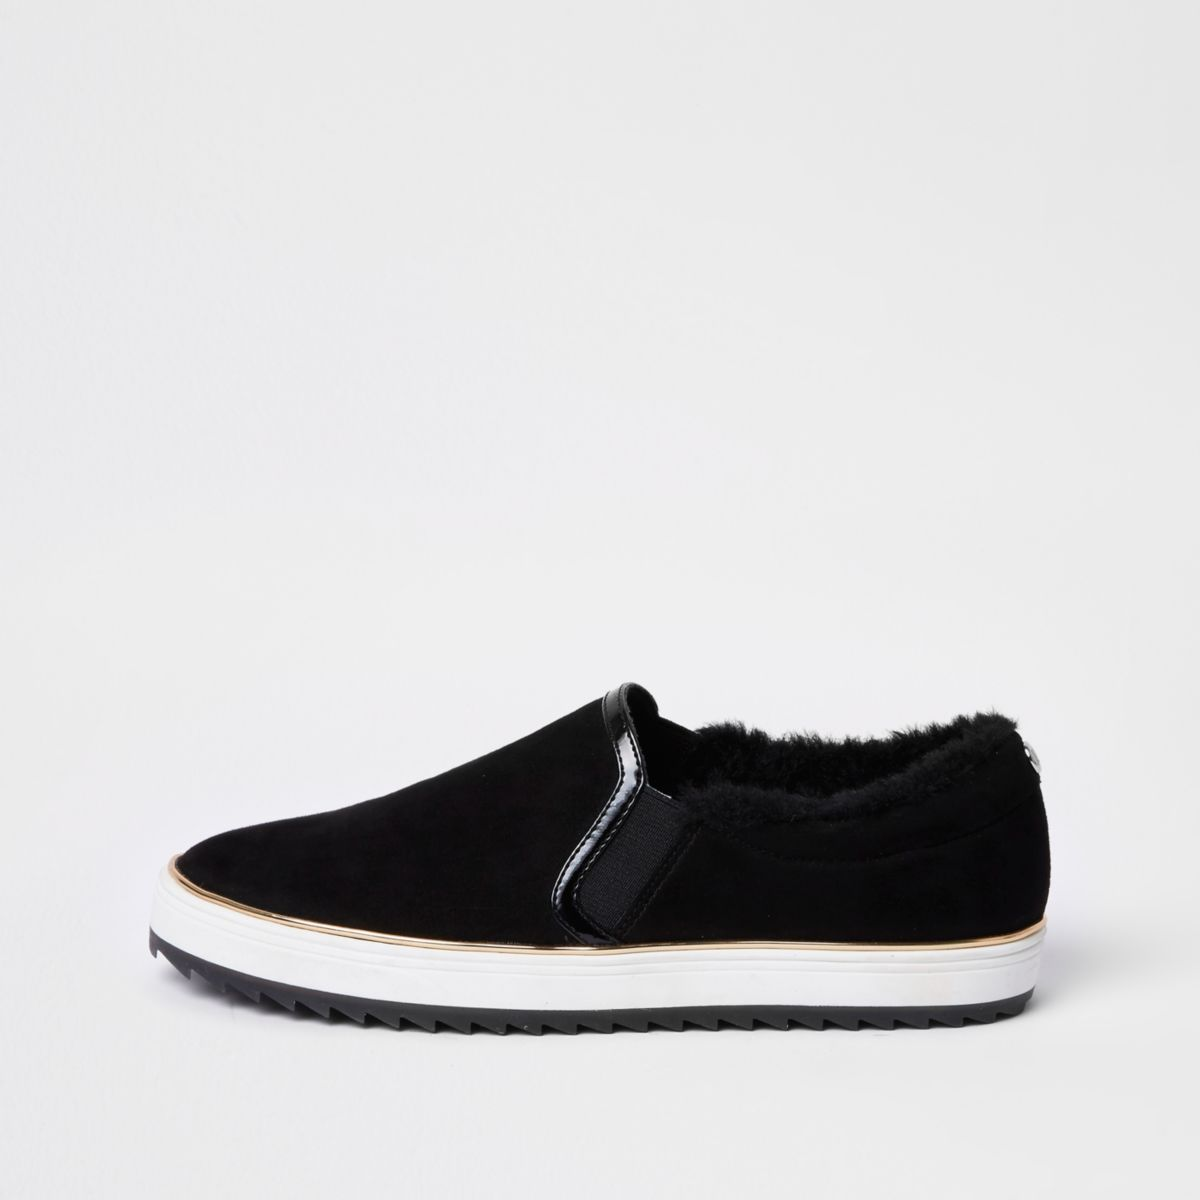 Black faux fur lined slip on plimsolls